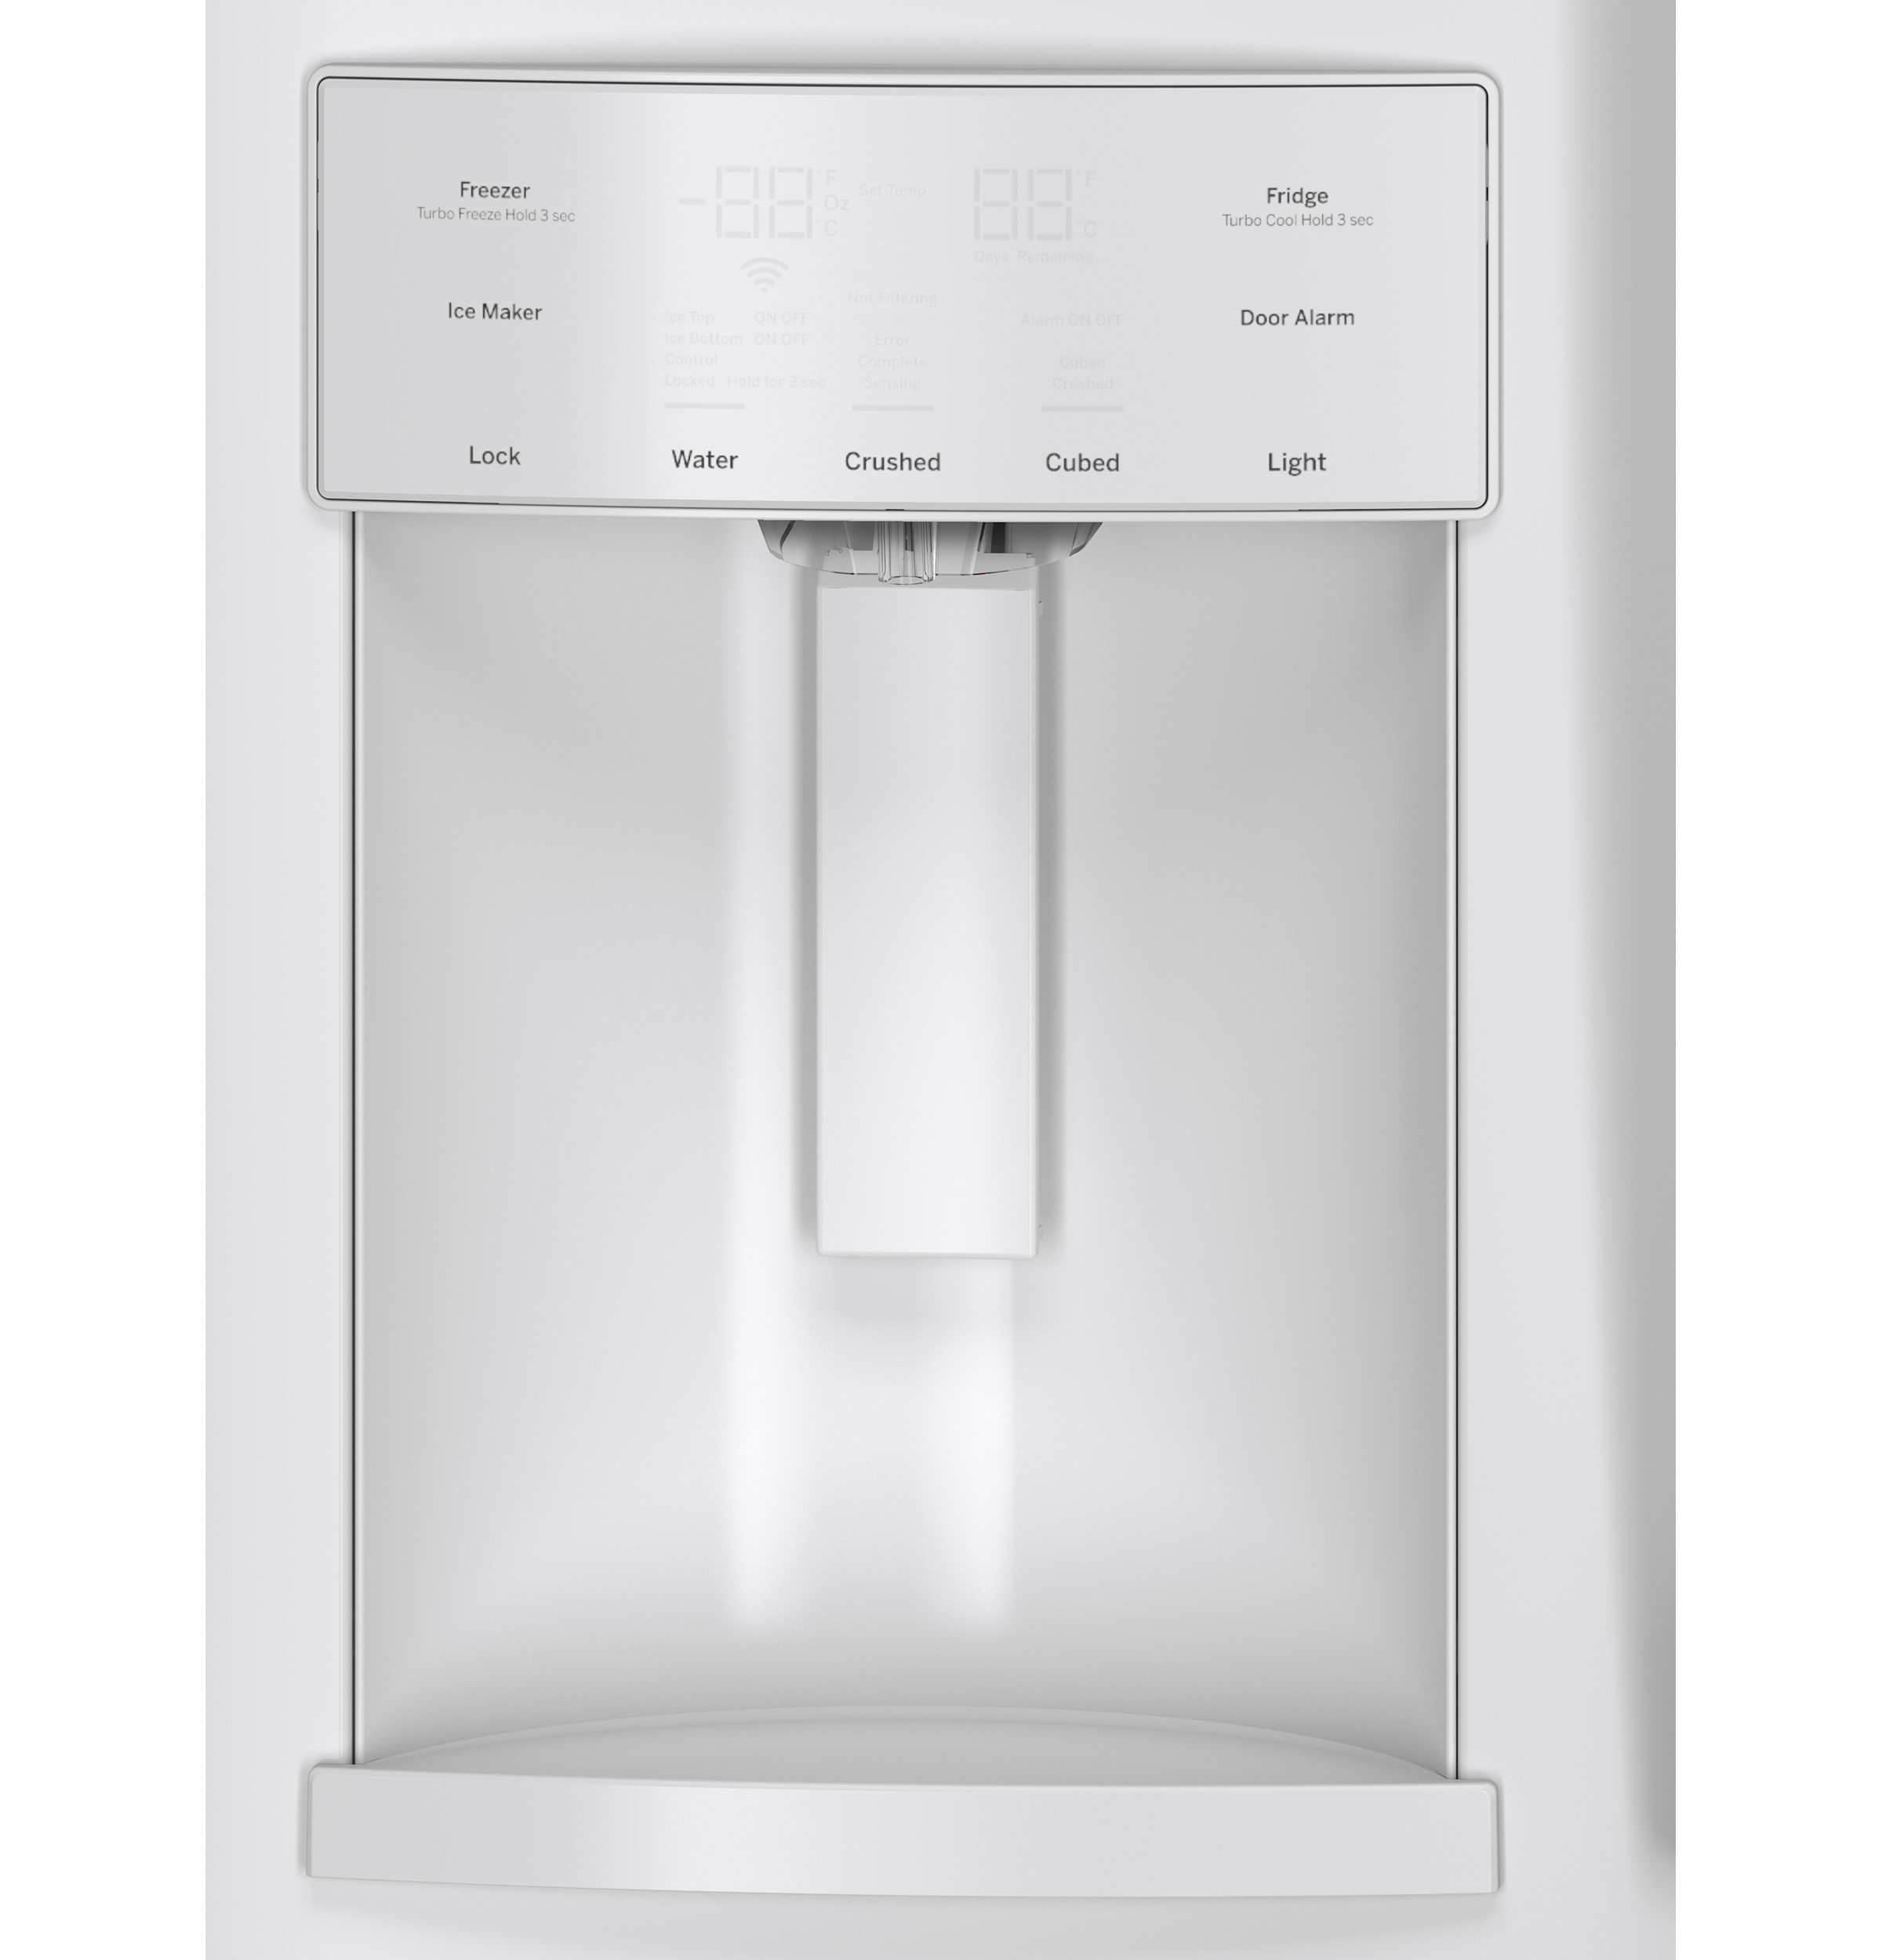 GE Appliances GFE28HGHWW 27.7 cu. ft. French-Door Ice and Water Refrigerator - White